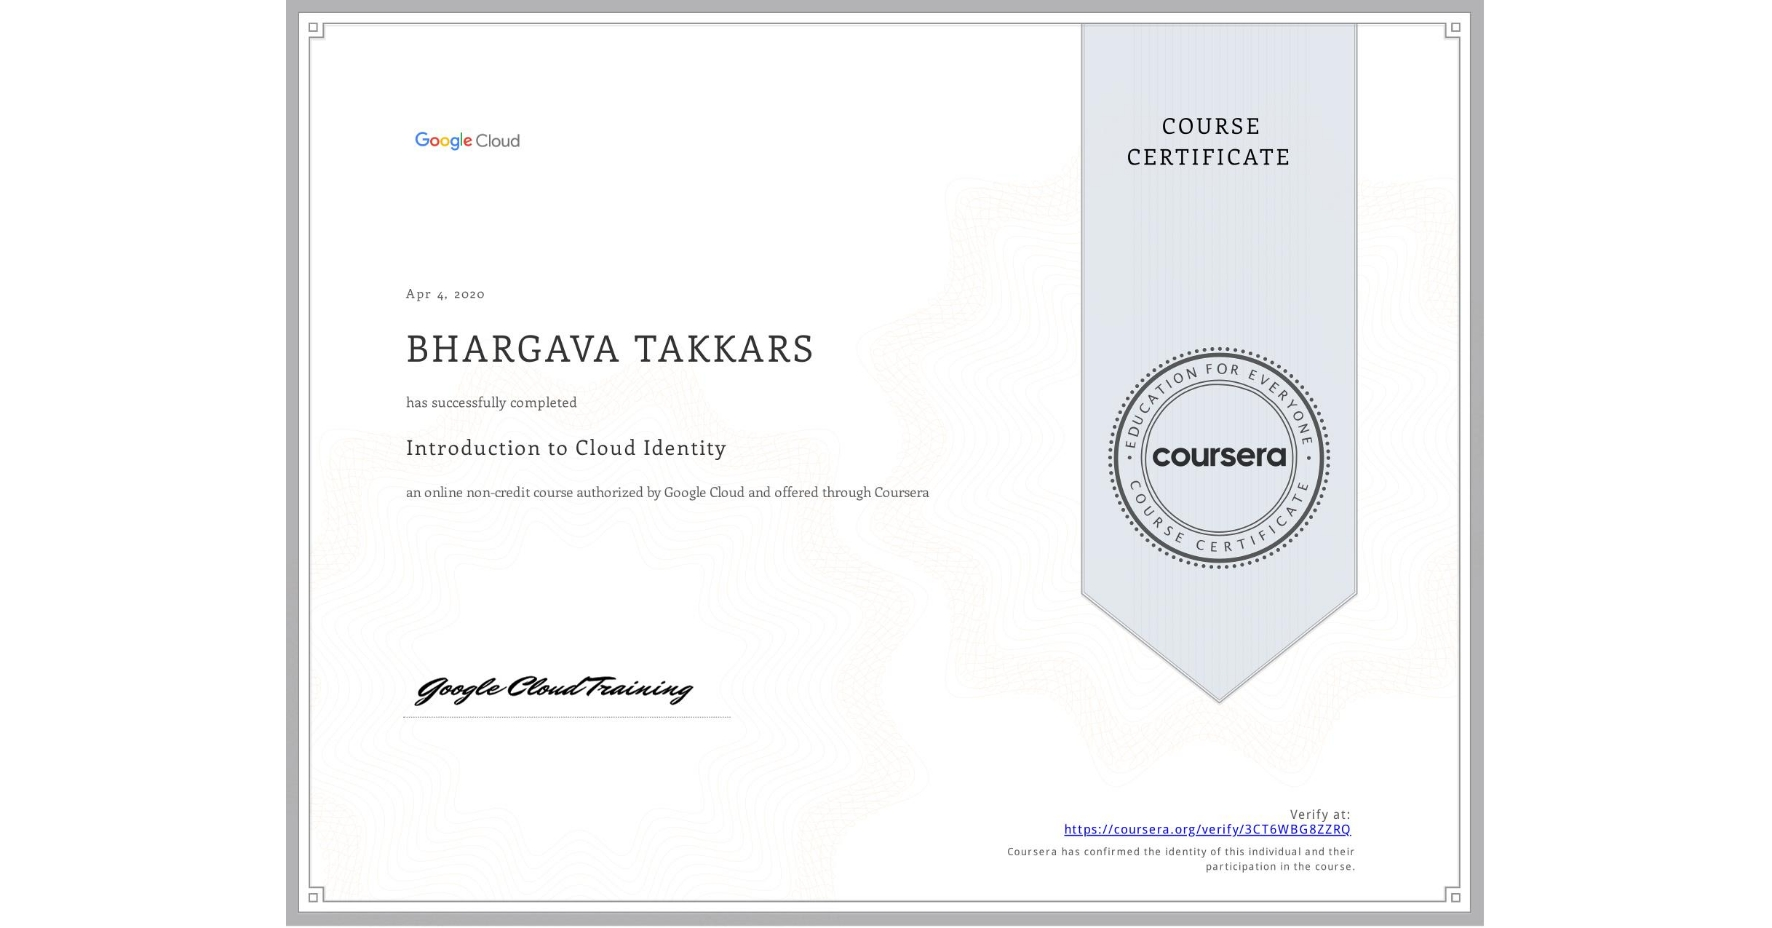 View certificate for BHARGAVA TAKKARS, Introduction to Cloud Identity, an online non-credit course authorized by Google Cloud and offered through Coursera